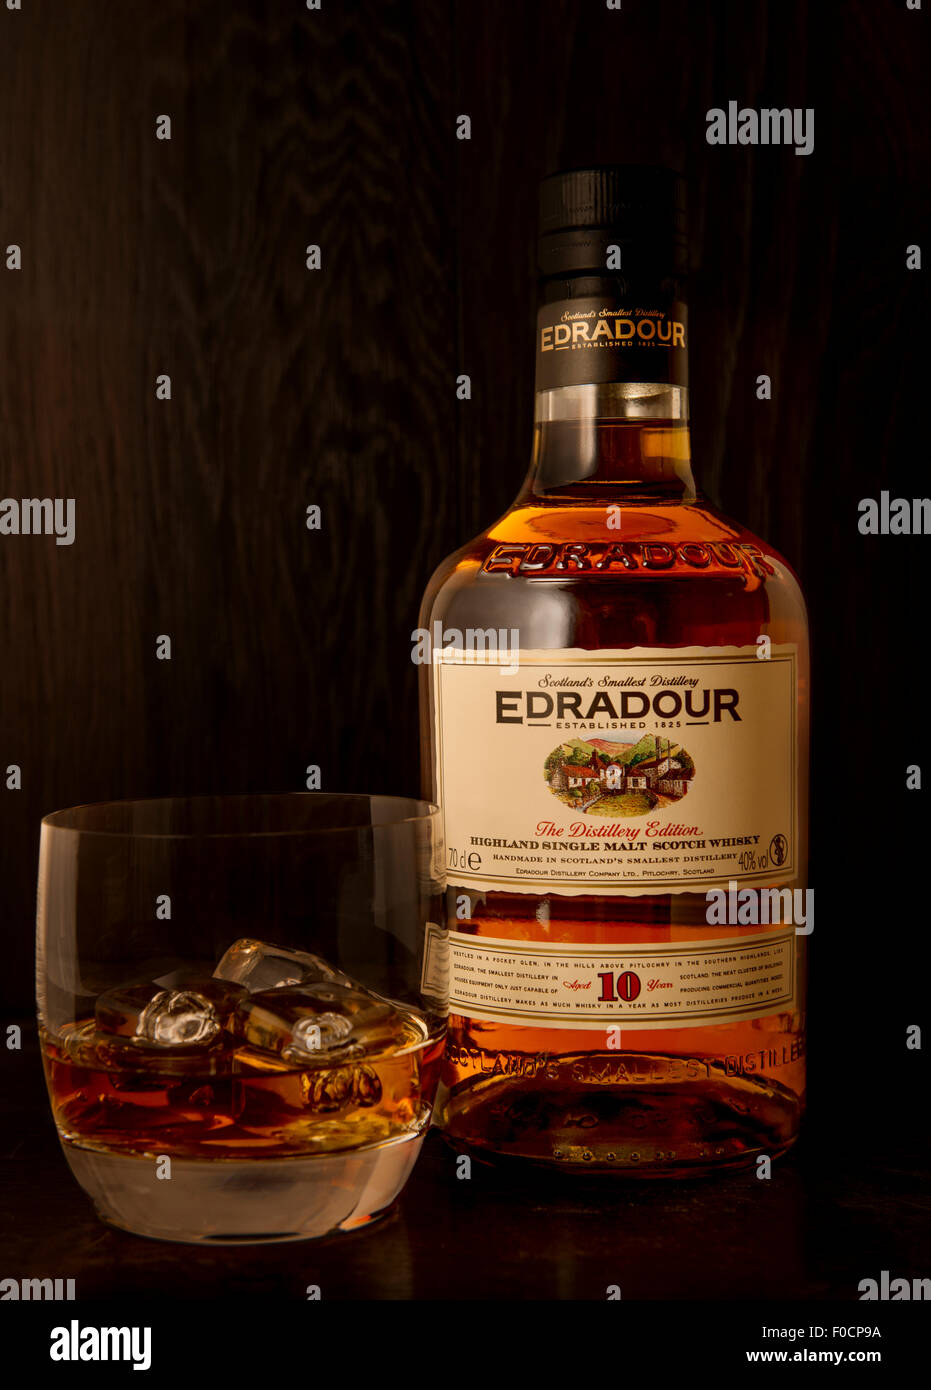 Edradour single malt scotch whisky from the smallest distillery in Scotland - Stock Image